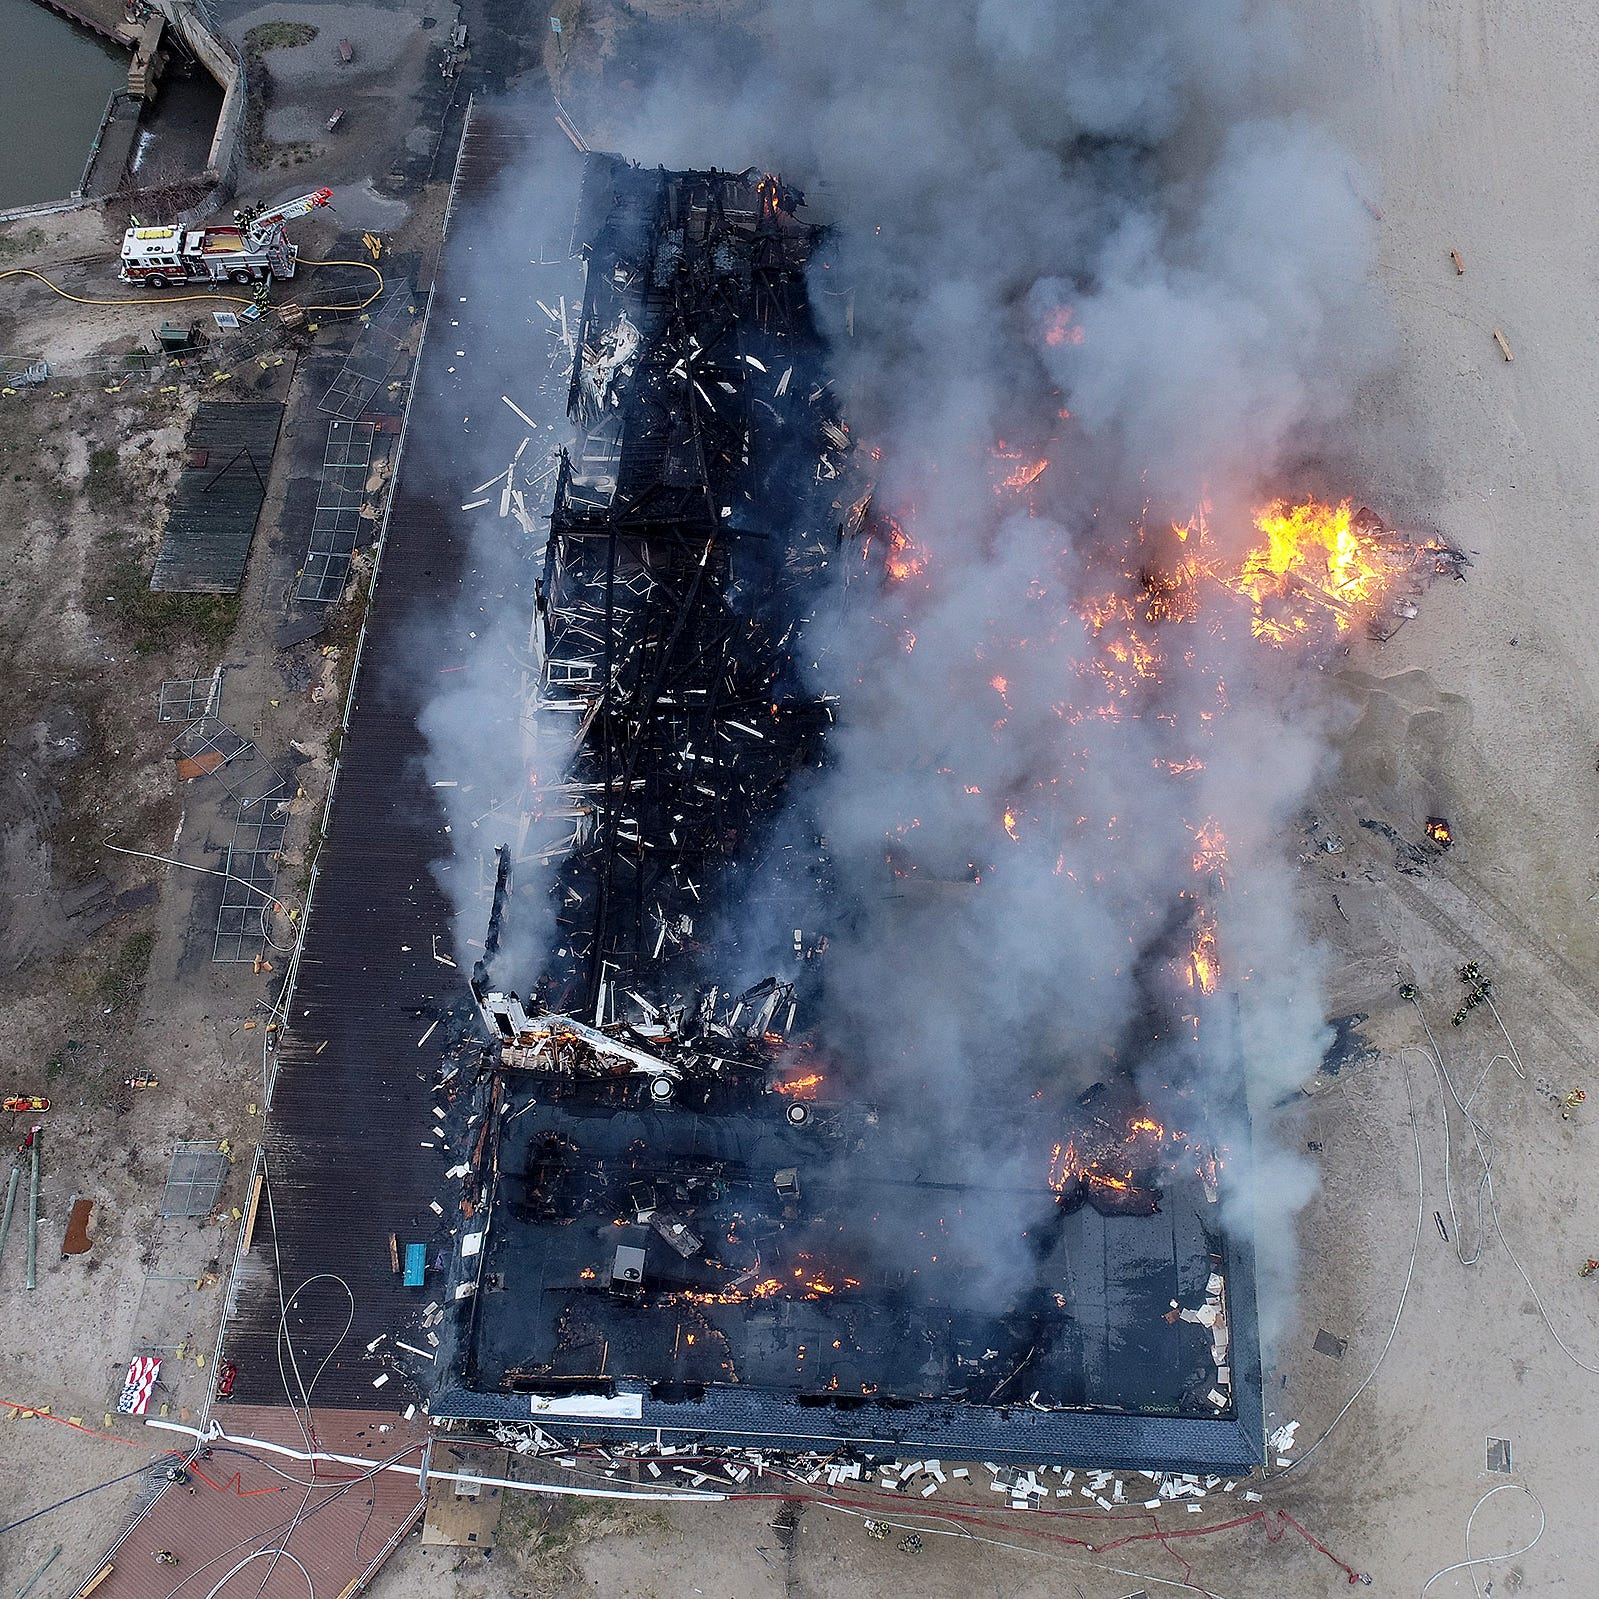 Ocean Grove fire cause undetermined; Homeless were known to stay near pavilion